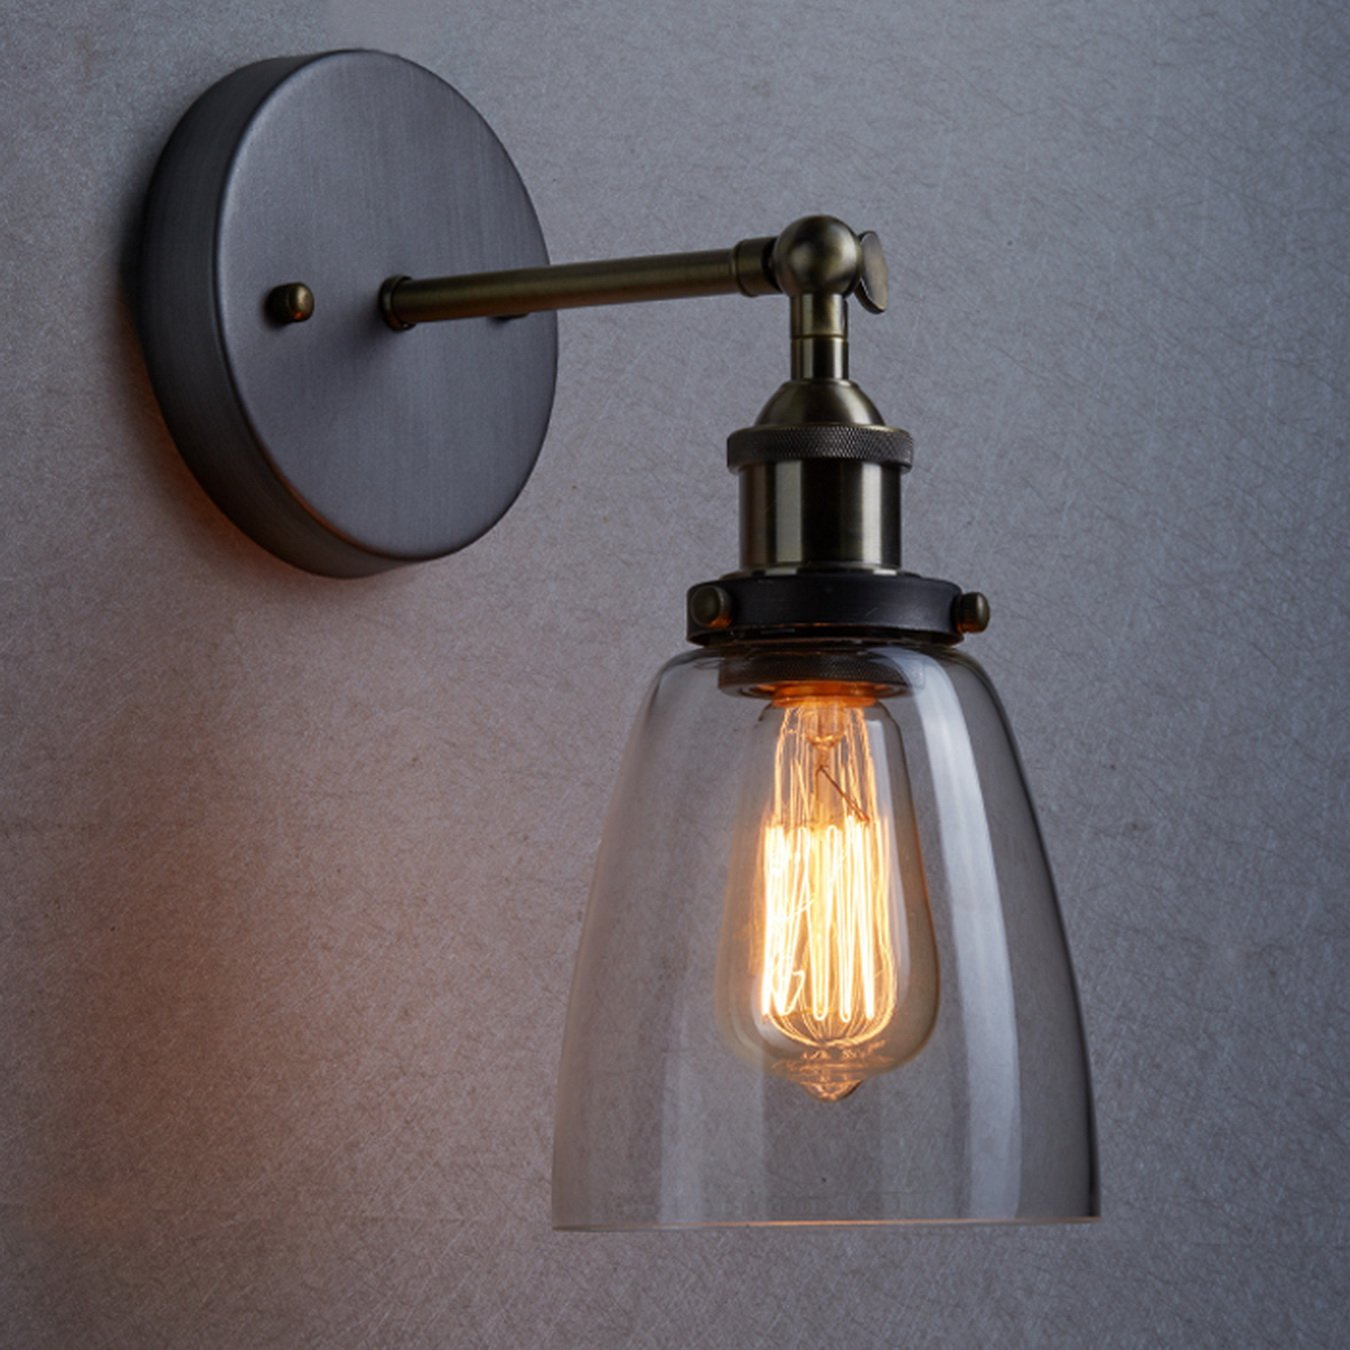 Special vintage style industrial edison ceiling lamp w bulb old - Claxy Industrial Edison Vintage Ceiling Light Glass Wall Sconce Lighting